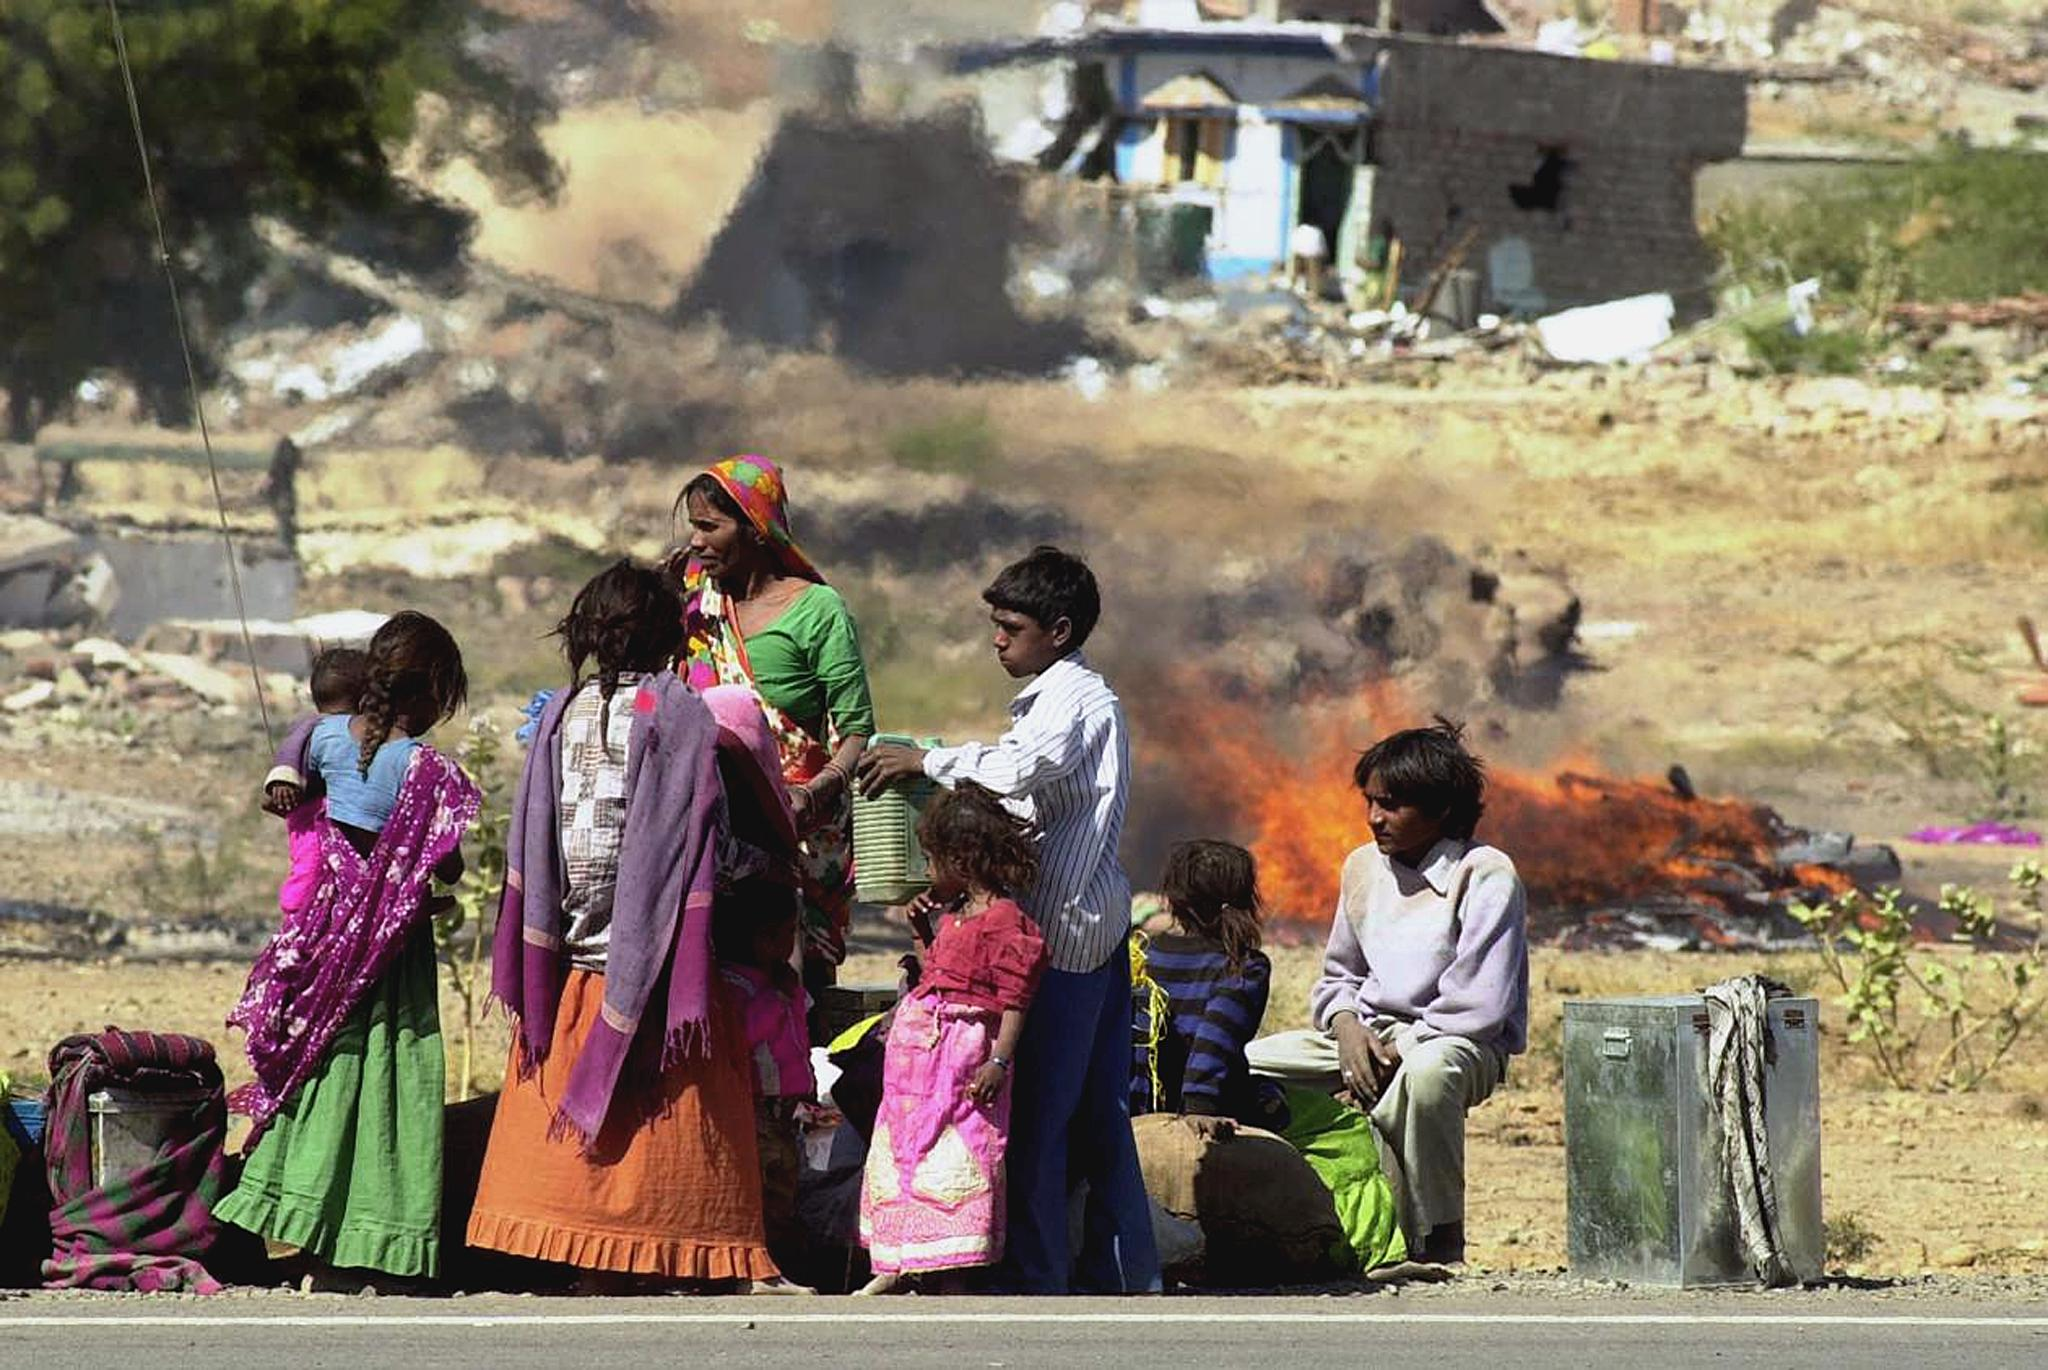 A homeless family waits for a vehicle on Jan. 27, 2001 against a backdrop of ruined houses and a funeral pyre, in the village of Boundi in Bhuj district in Gujarat.